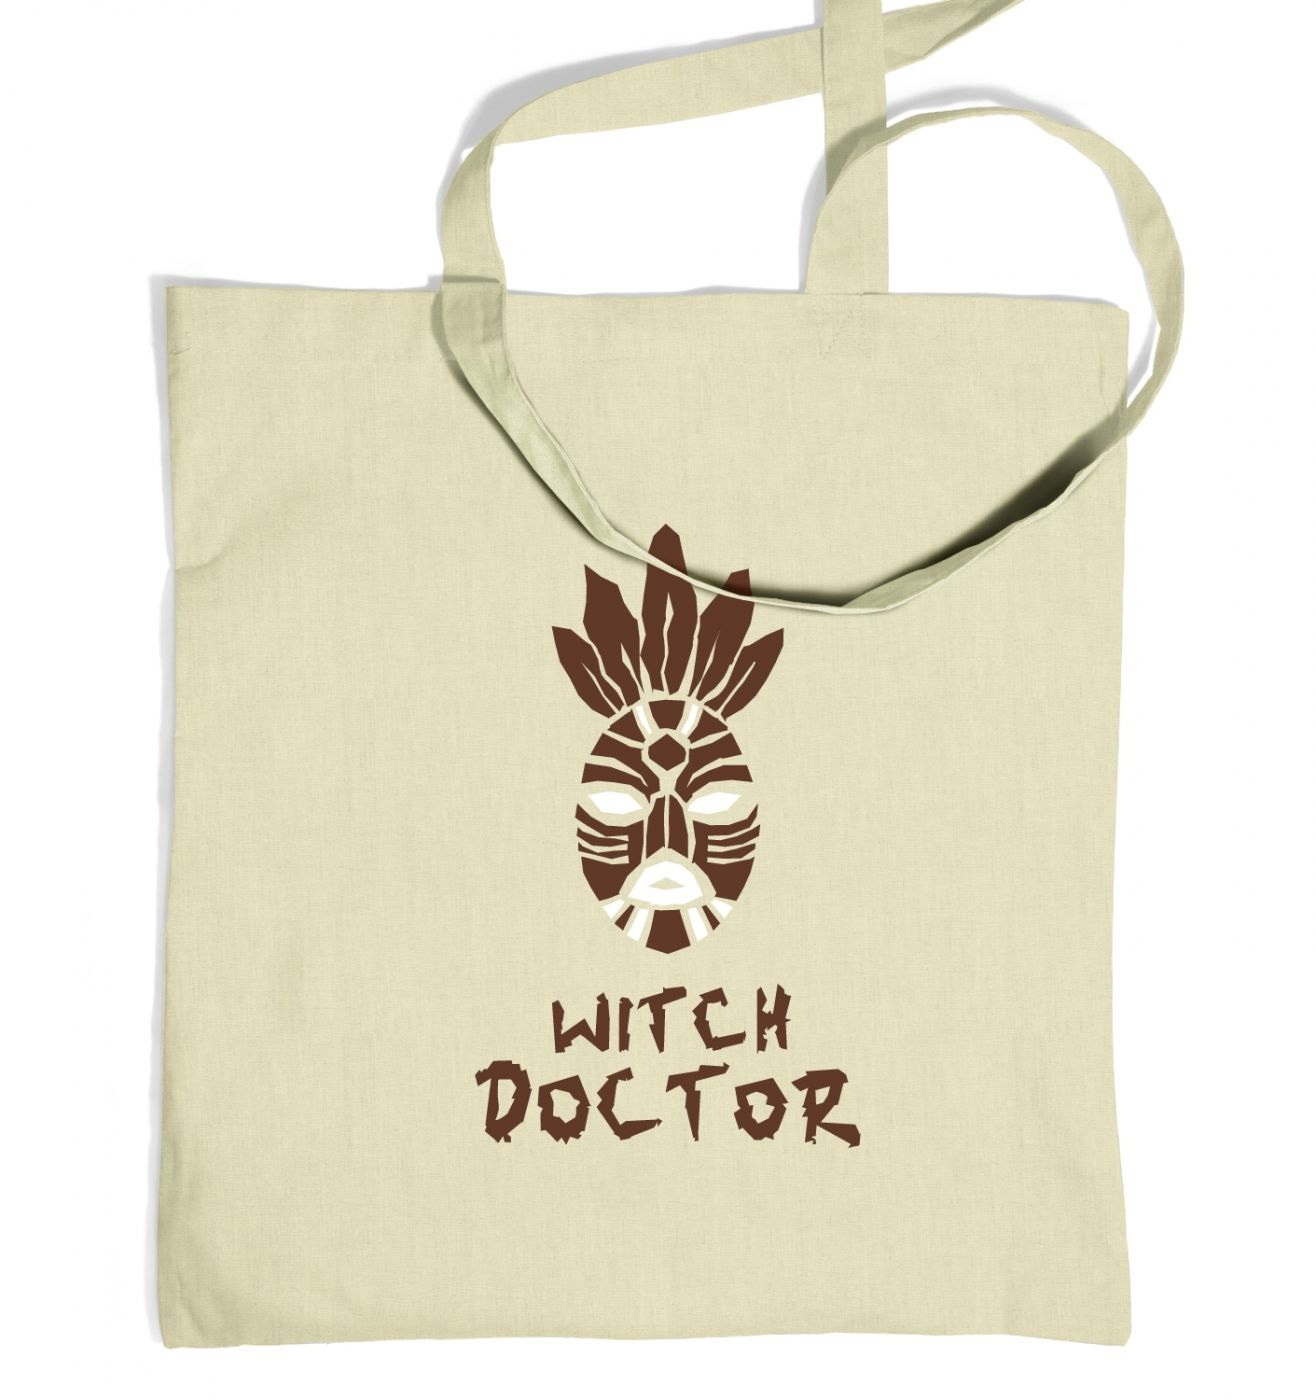 Witch Doctor Mask tote bag